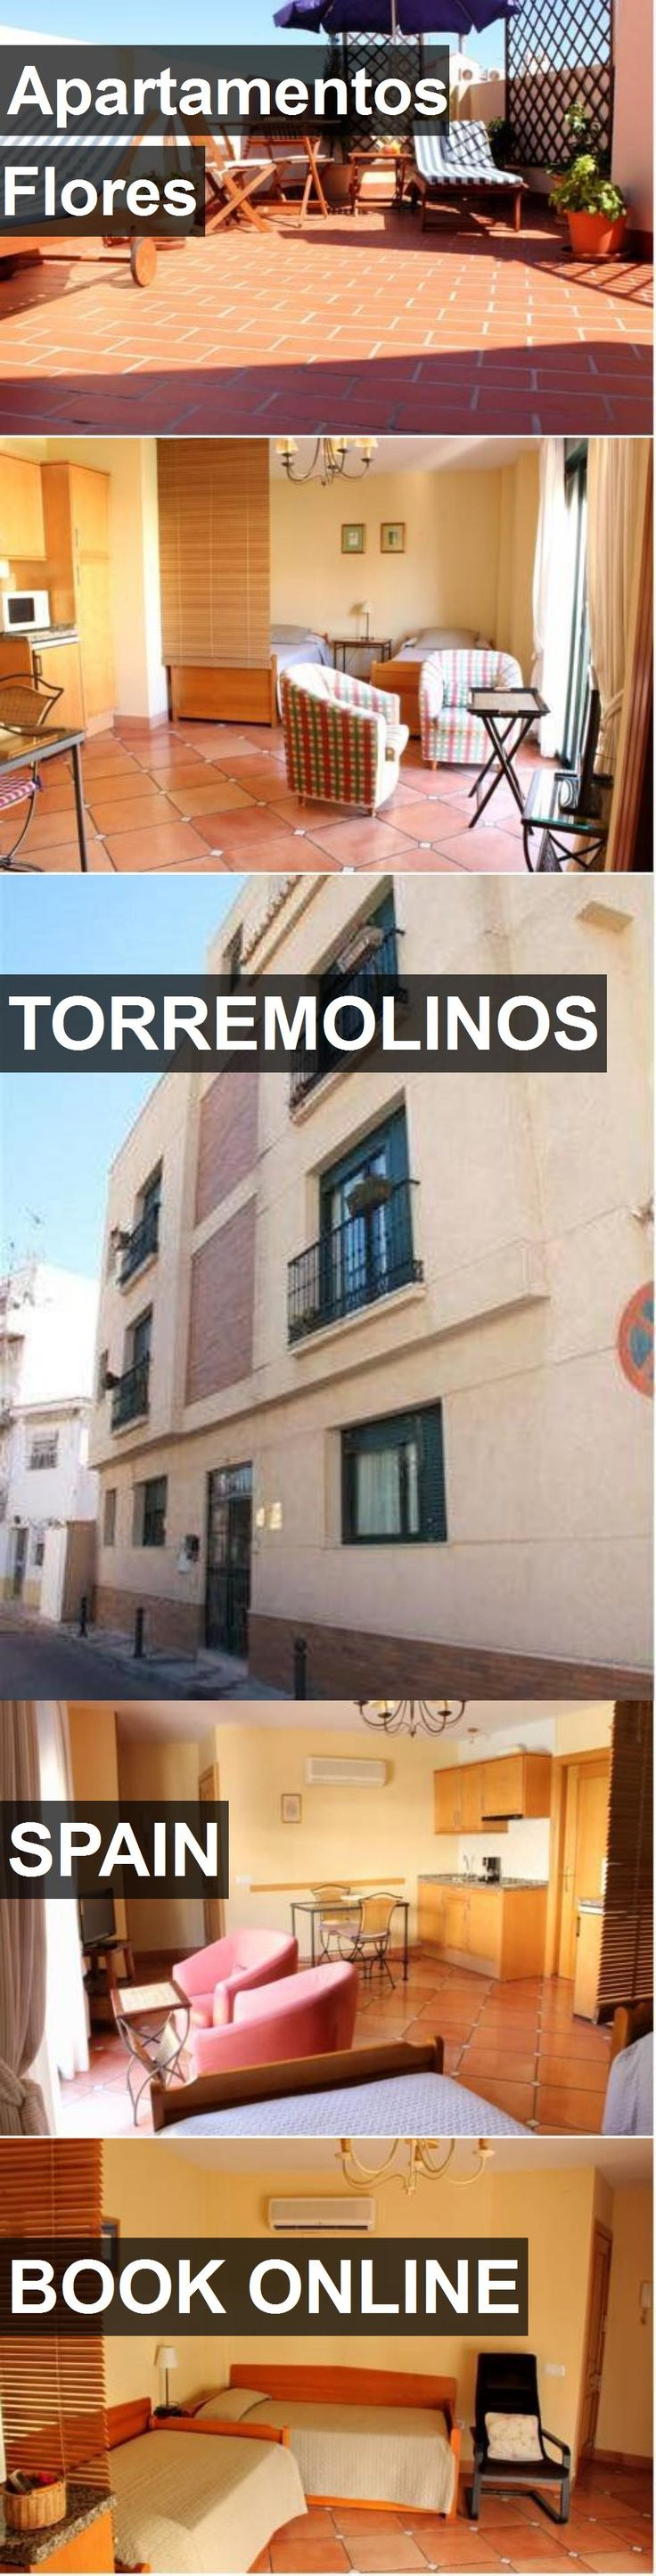 Hotel Apartamentos Flores in Torremolinos, Spain. For more information, photos, reviews and best prices please follow the link. #Spain #Torremolinos #travel #vacation #hotel